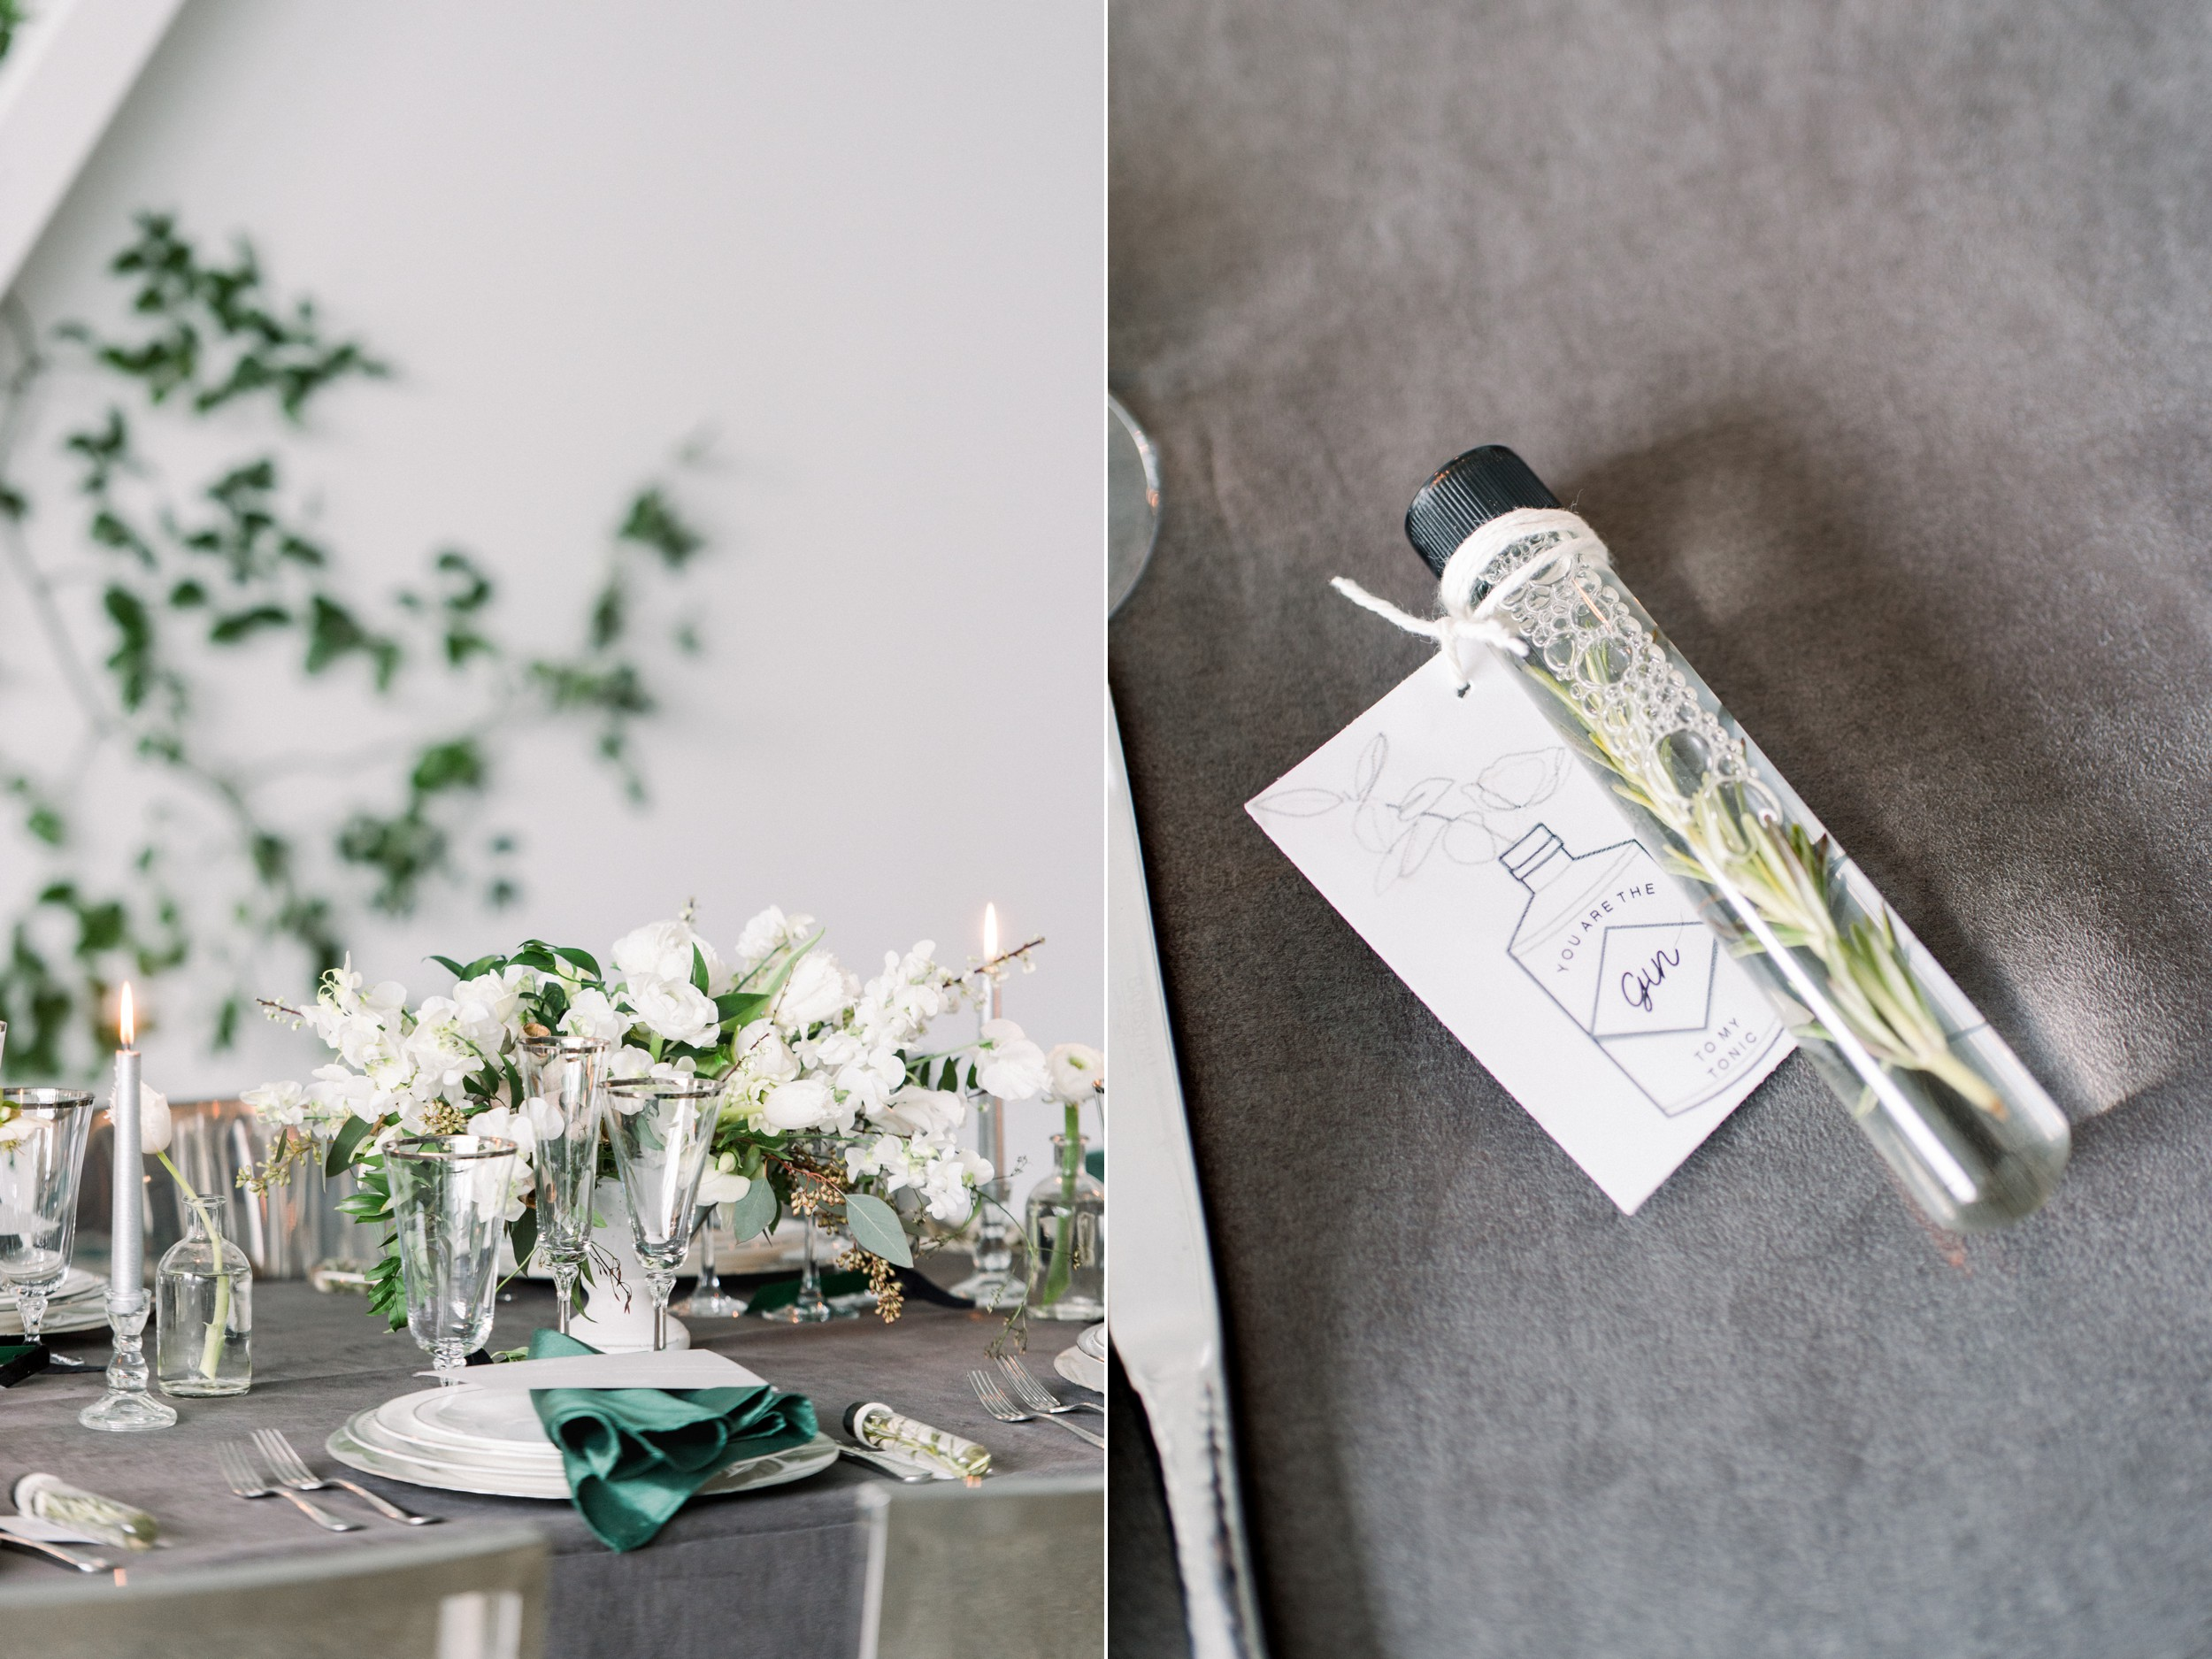 Artists for humanity epicenter wedding Boston wedding ivy feature wall modern glamour candles white floral tablescape with velvet textures rosemary infused gin and tonic wedding favor